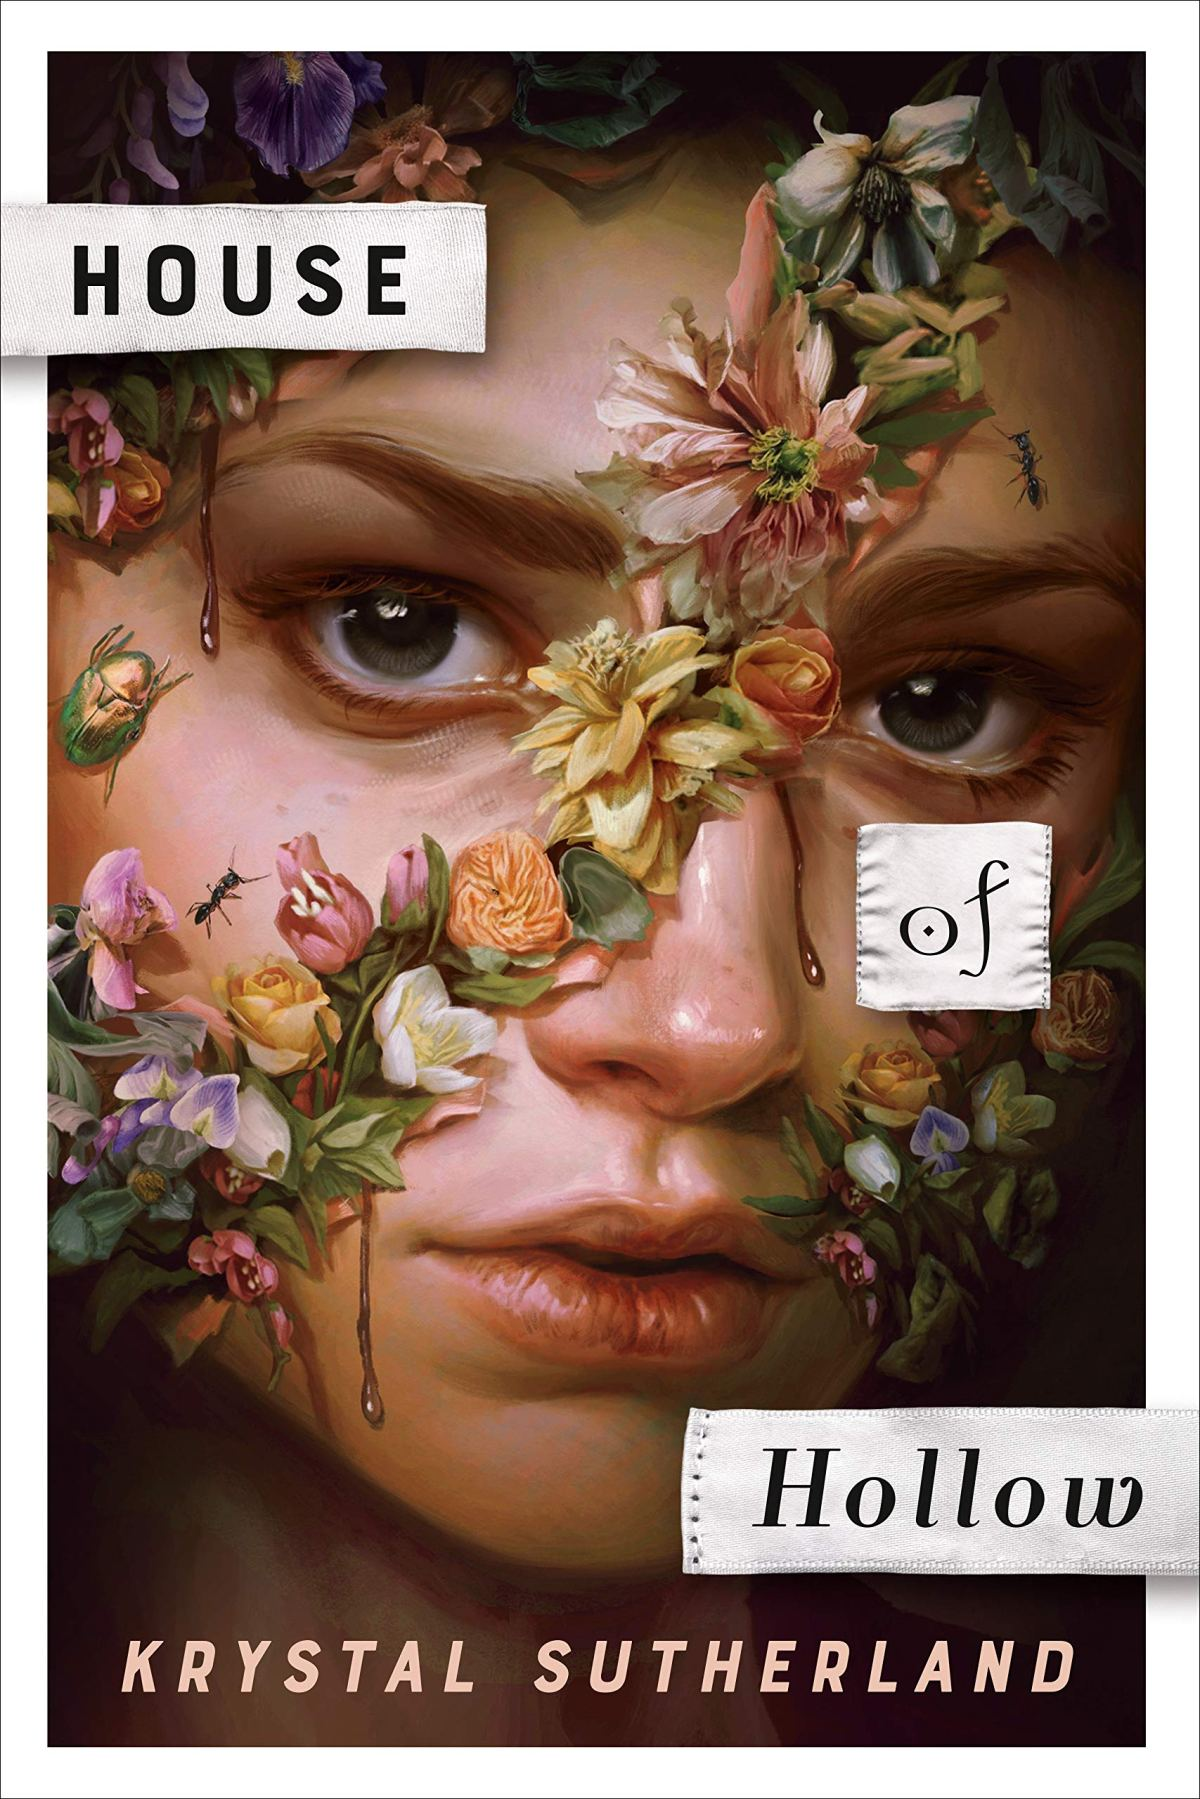 House of Hollow by Krystal Sutherland-#bookreview